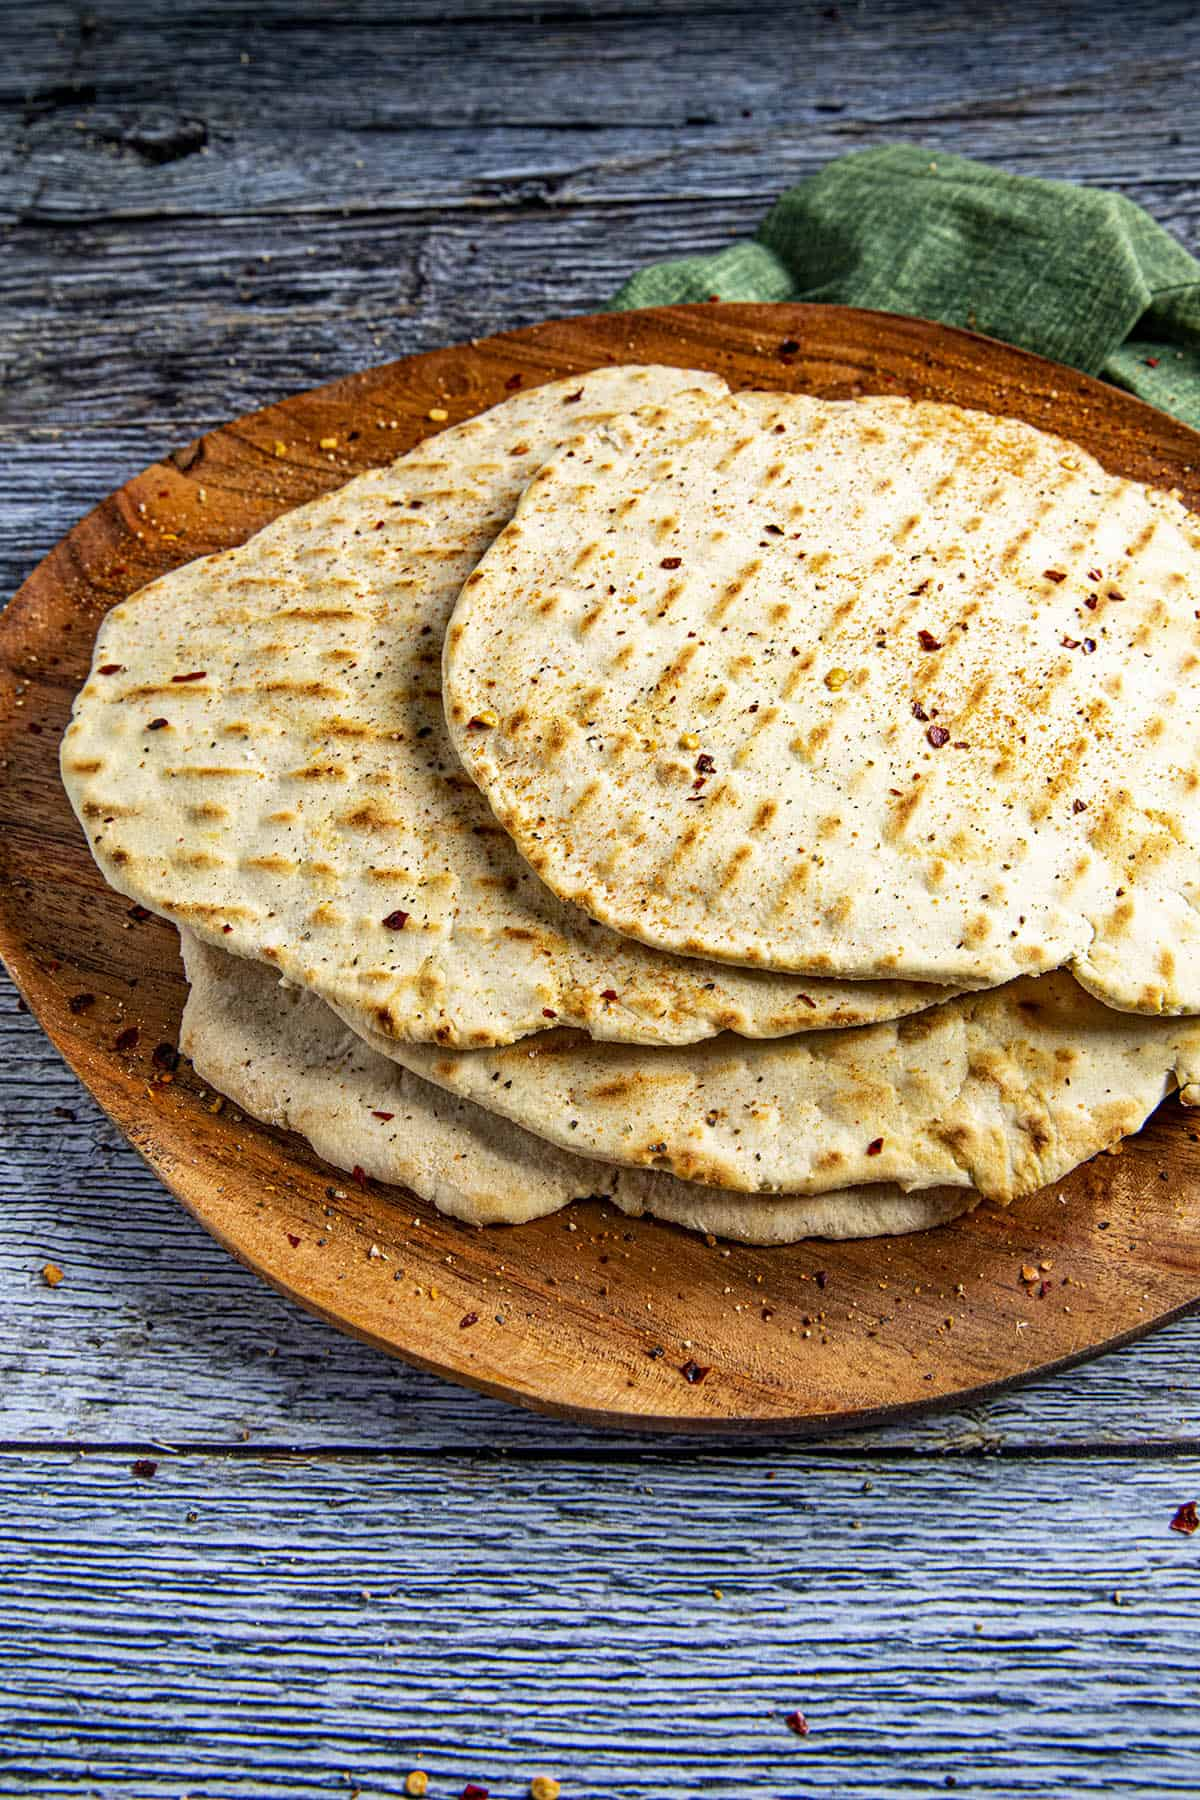 A stack of flatbreads on a plate